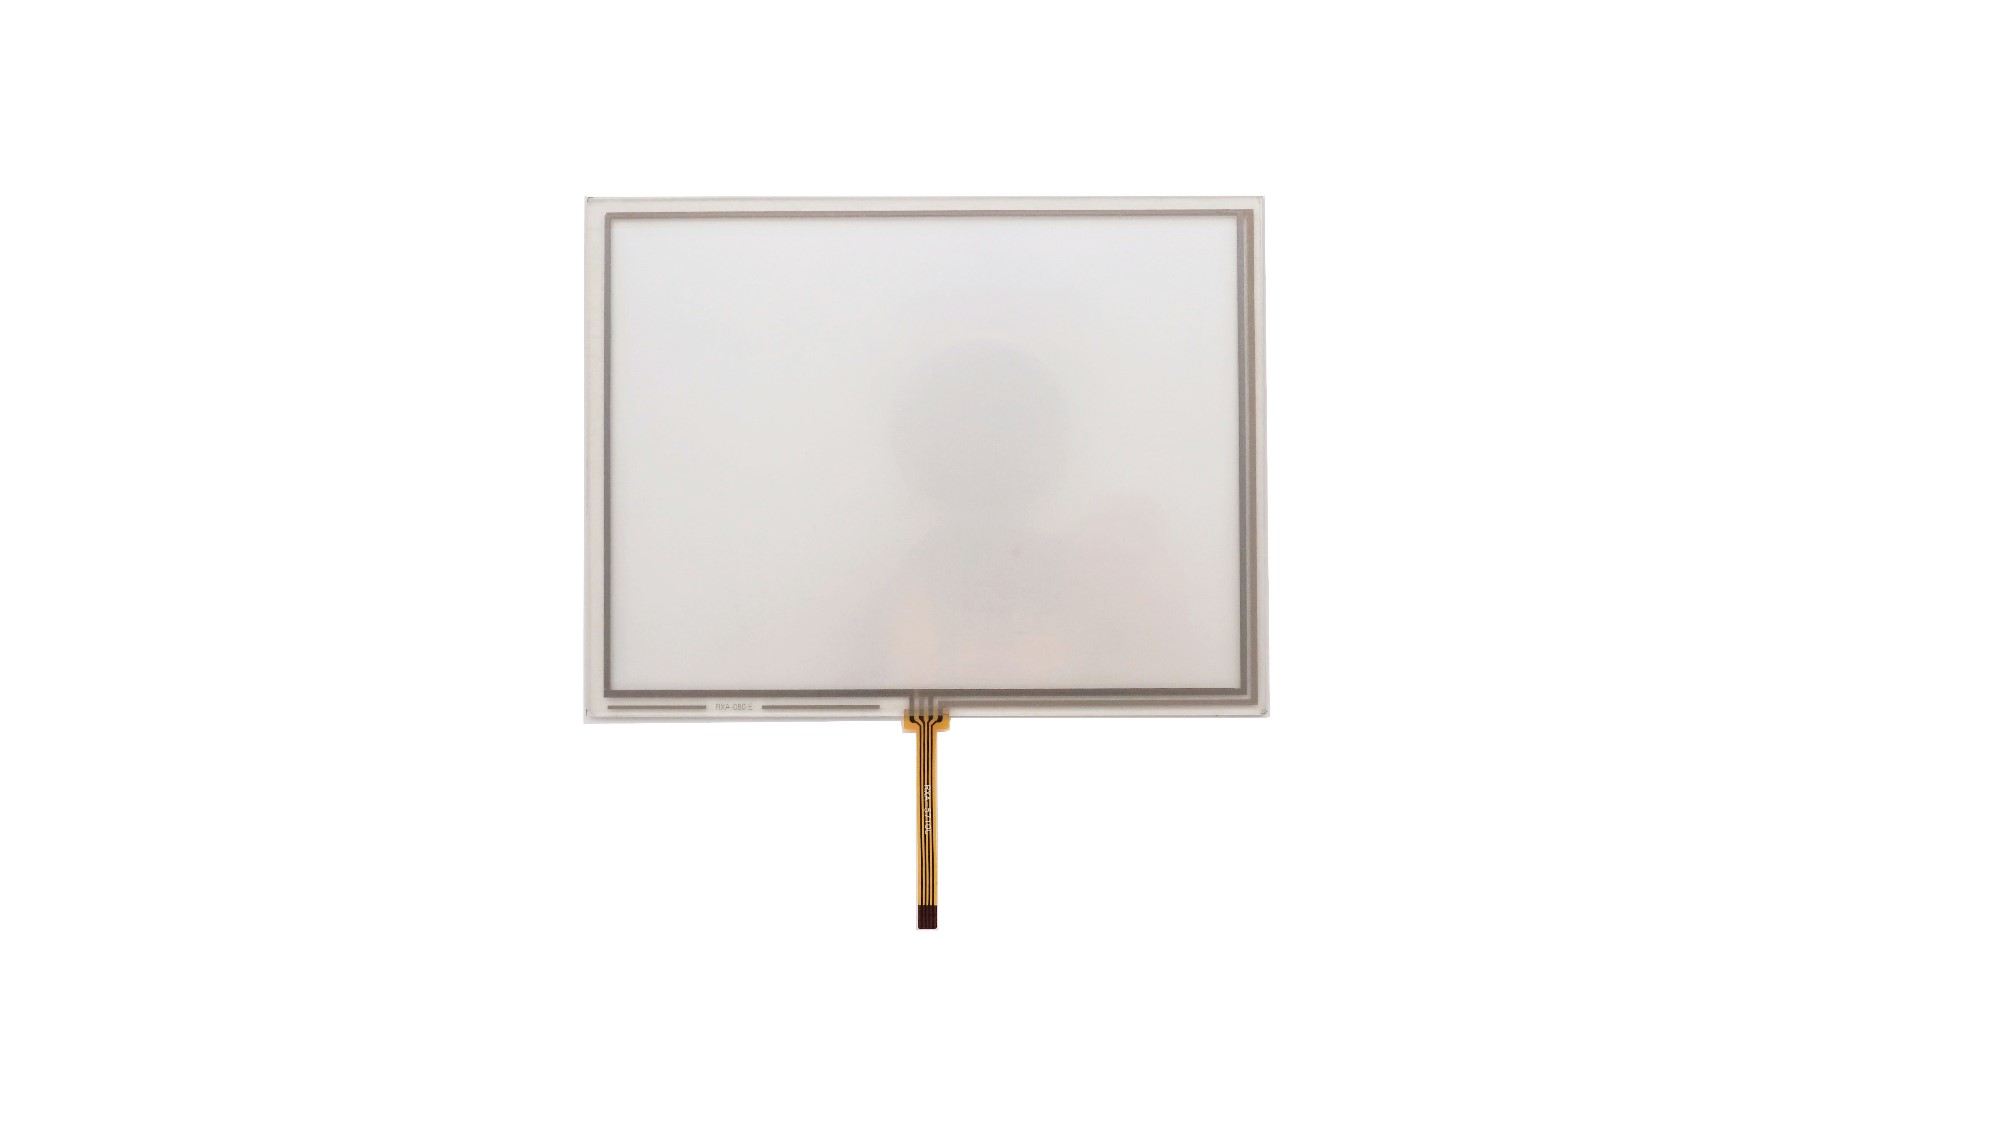 Custom China 8.0 Inch 4 Wire Resistive Touch Panel Screen, 8.0 Inch 4 Wire Resistive Touch Panel Screen Factory, 8.0 Inch 4 Wire Resistive Touch Panel Screen OEM